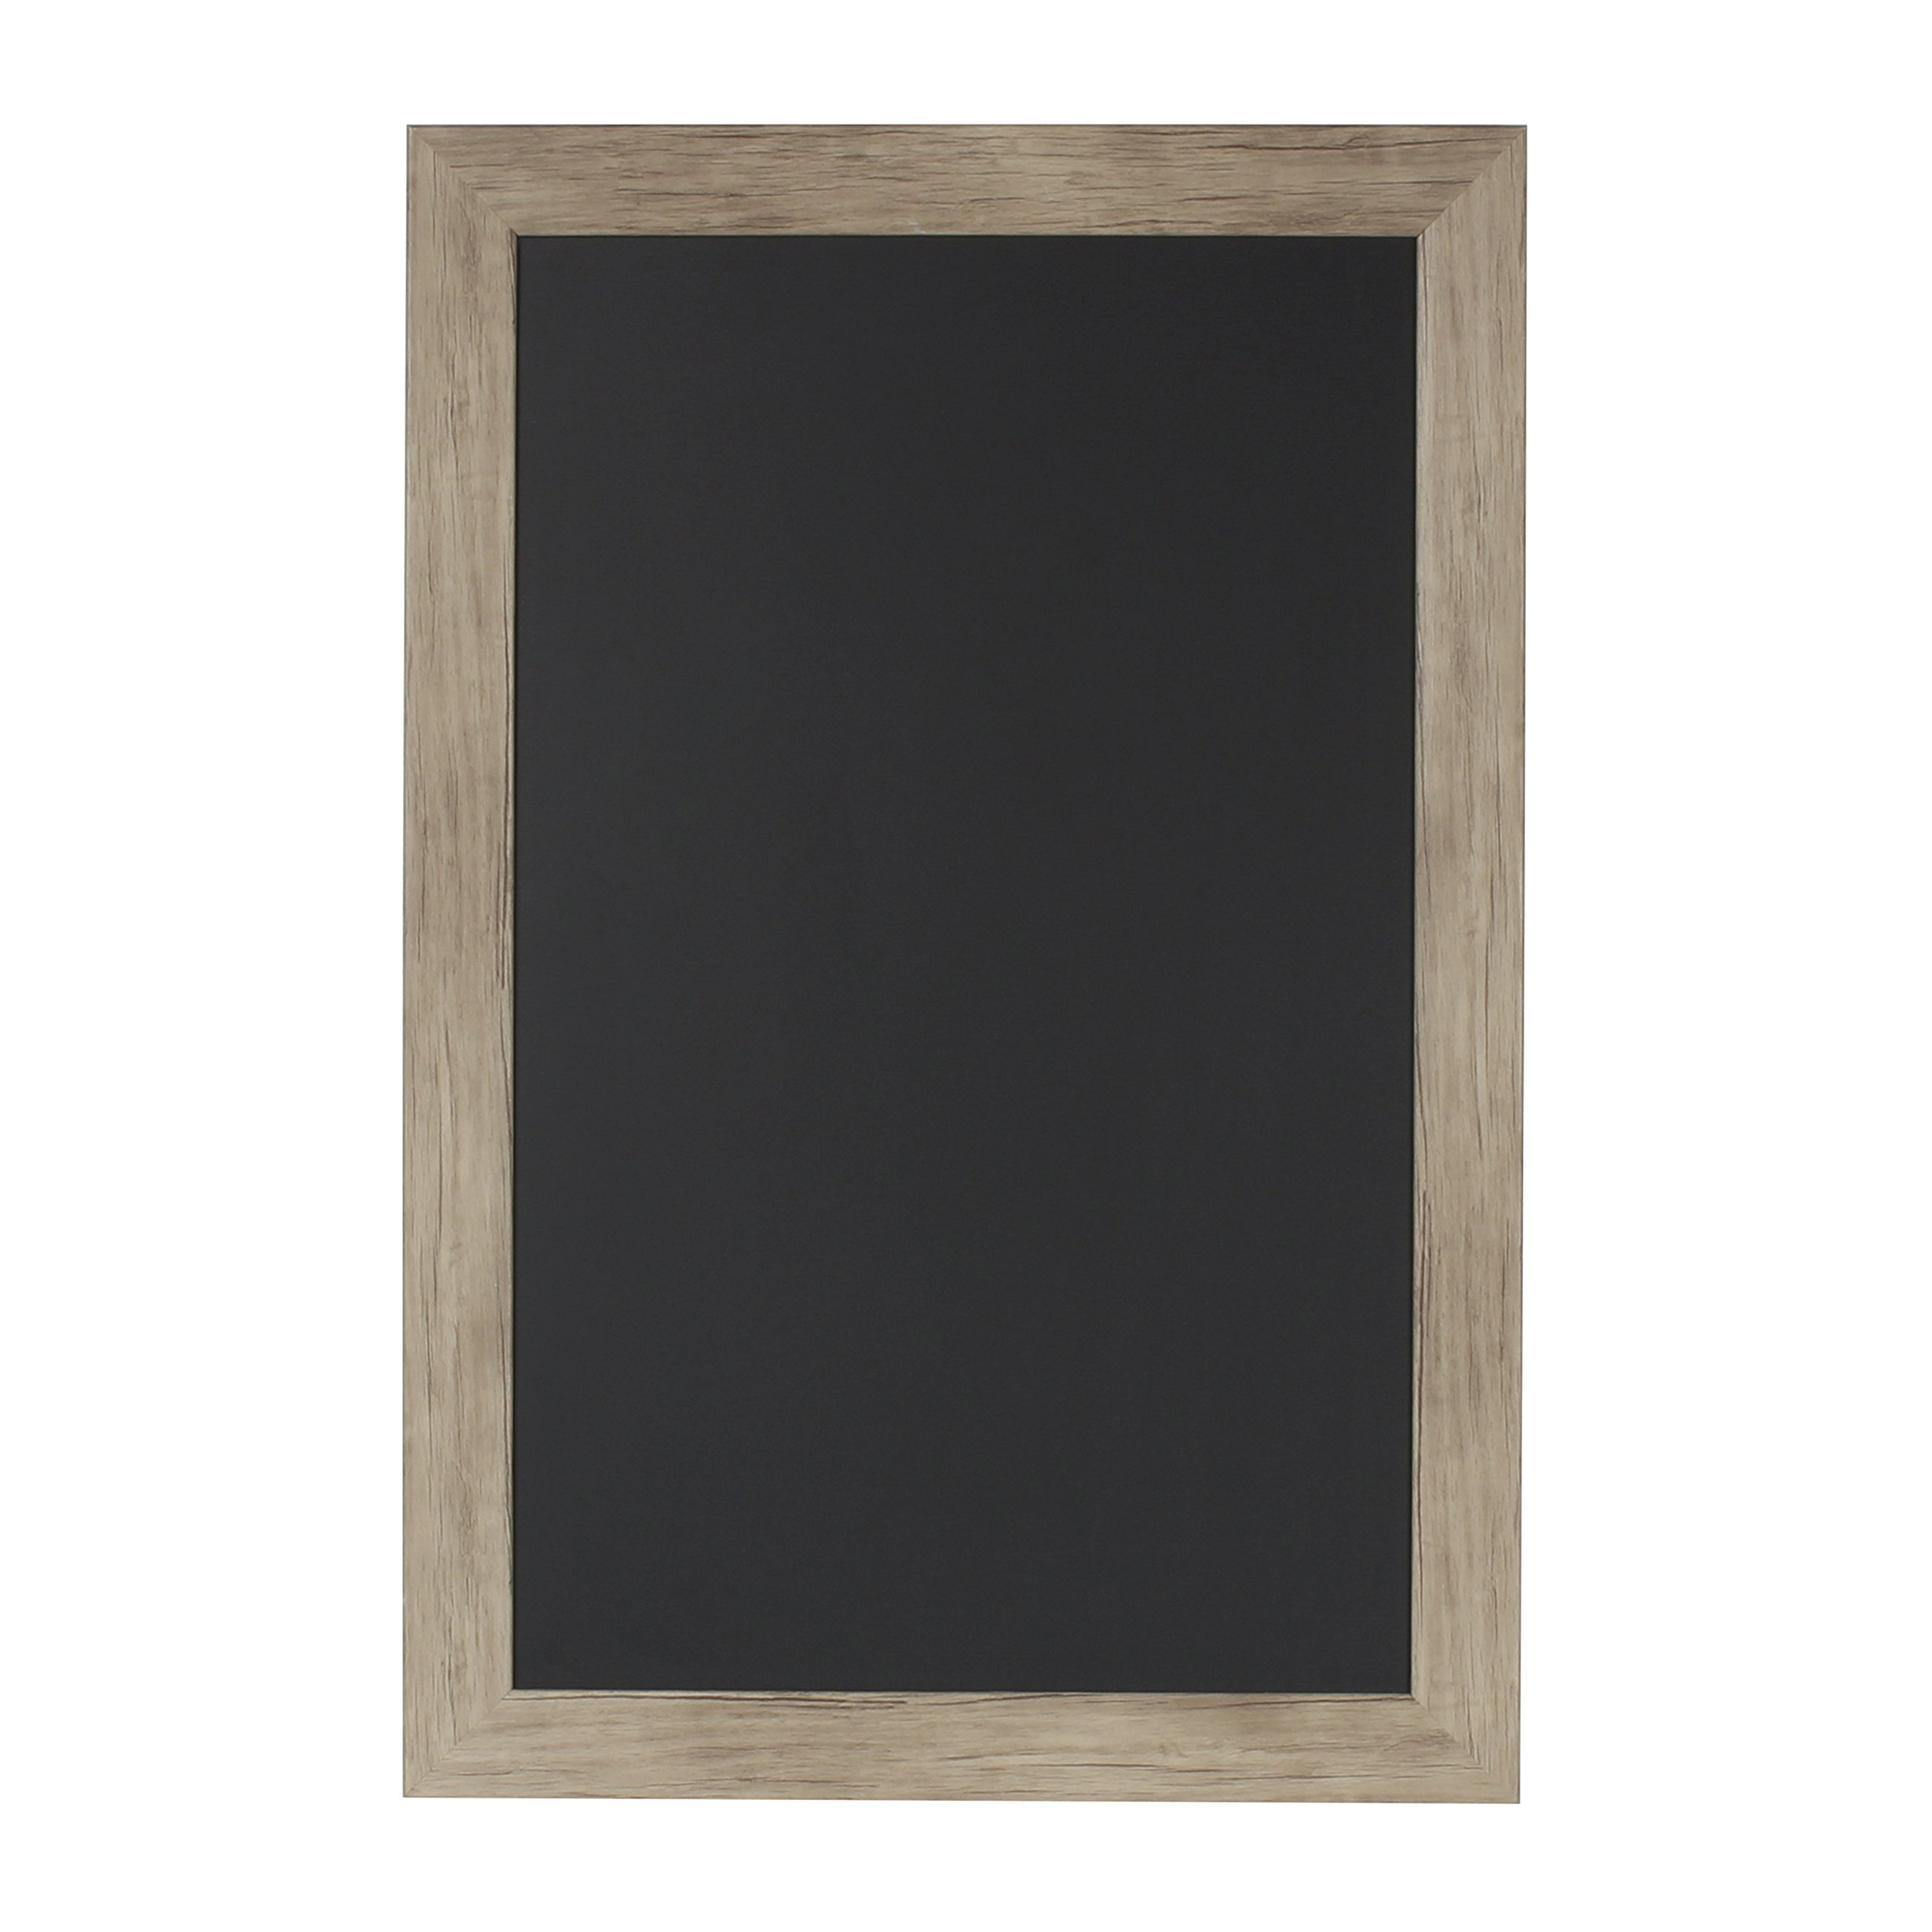 DesignOvation Beatrice Framed Magnetic Chalkboard, 18'' x 27'', Rustic Brown by DesignOvation